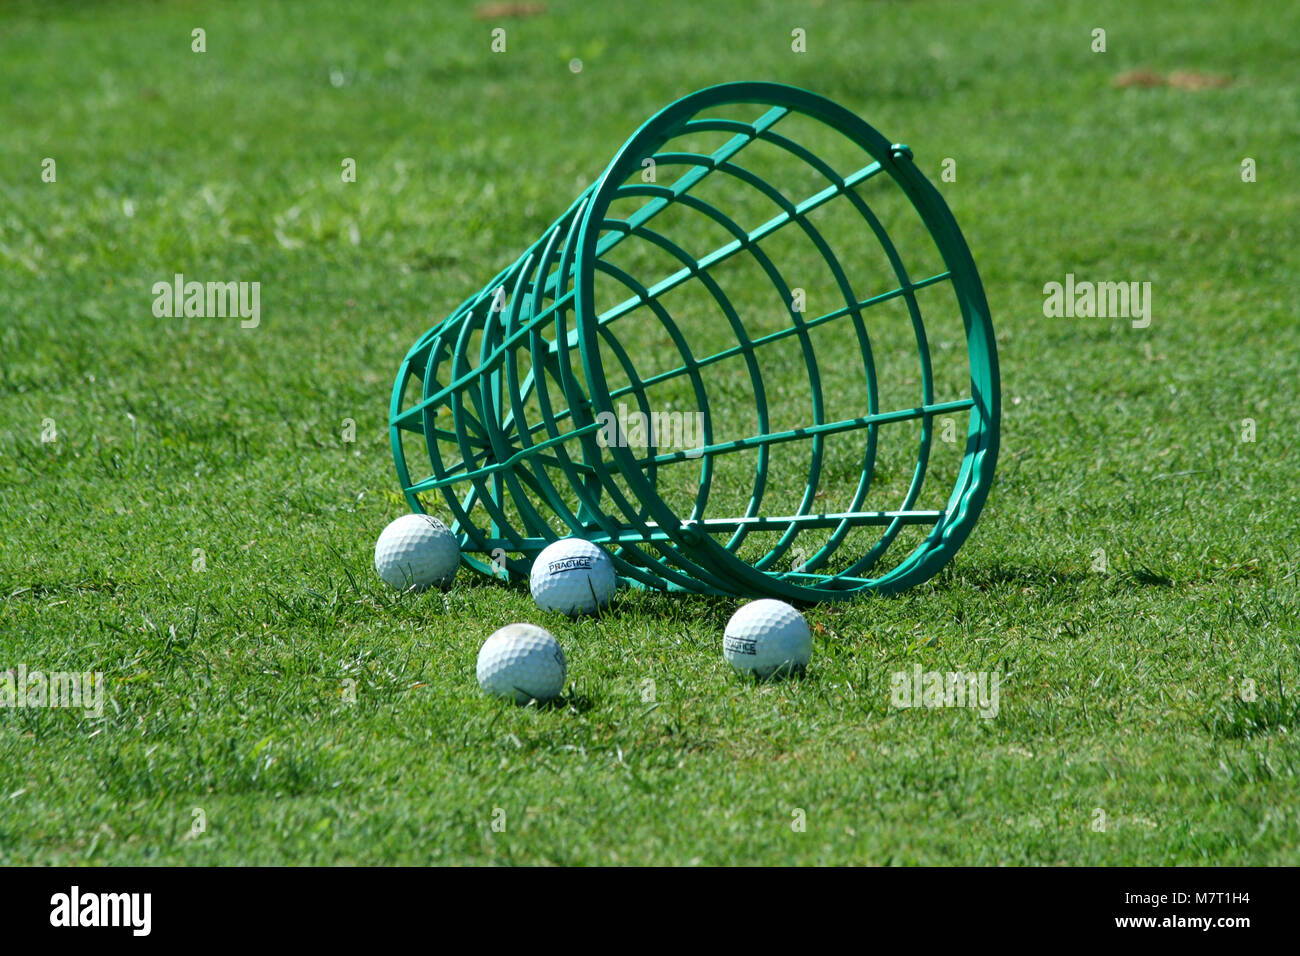 Golf Balls And Bucket High Resolution Stock Photography and Images ...